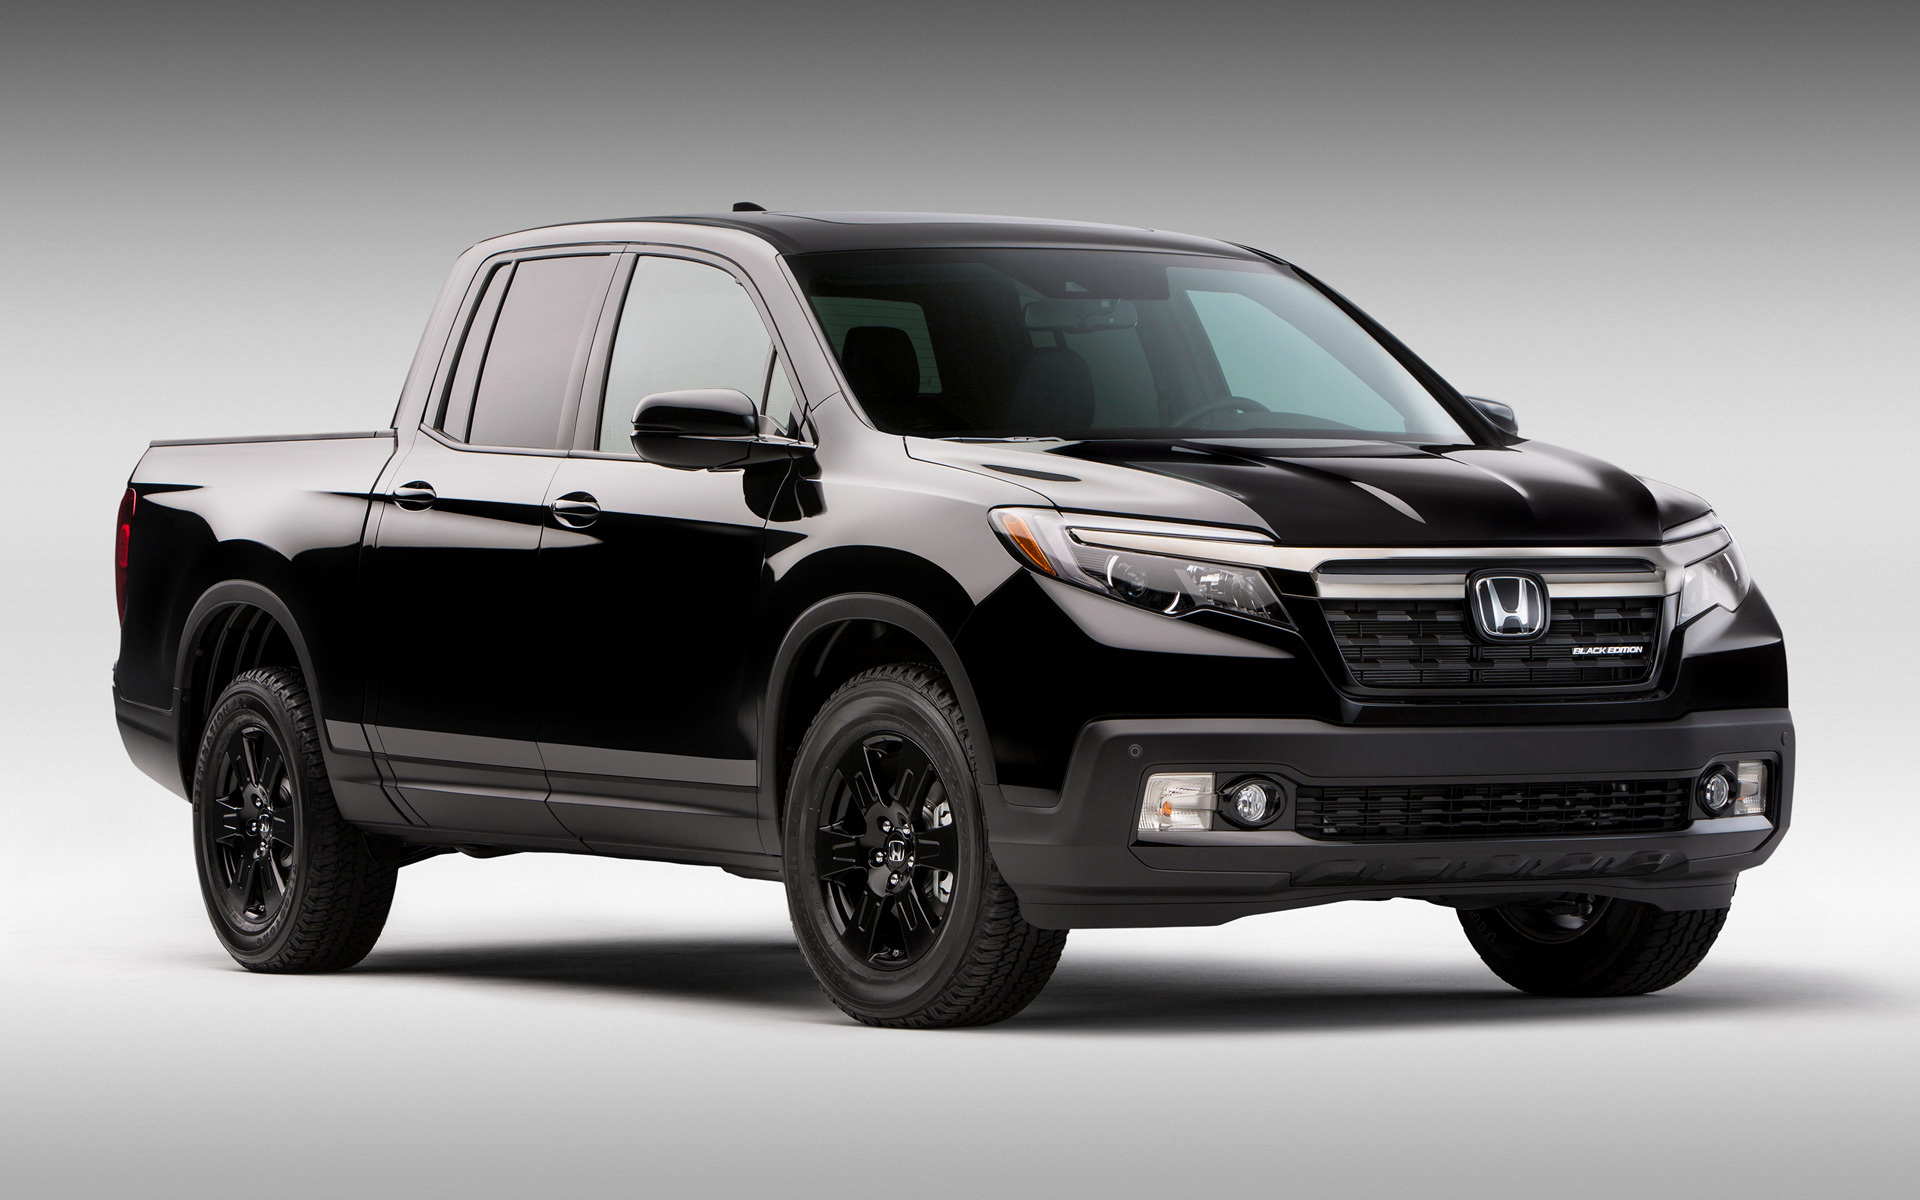 2017 Honda Ridgeline Black Edition - Wallpapers and HD ...